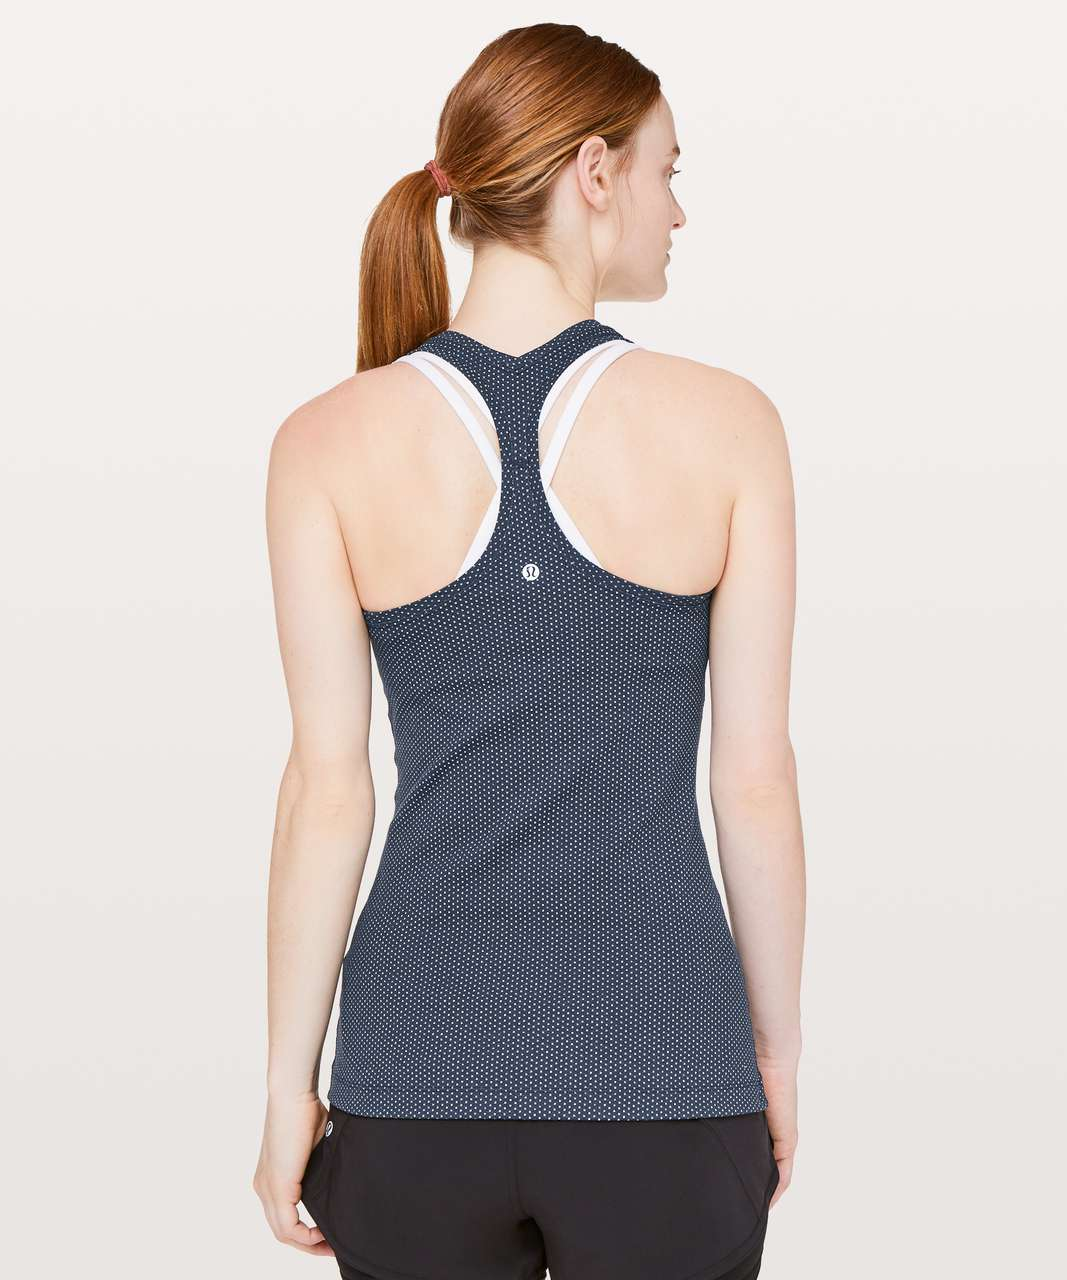 Lululemon Cool Racerback II - Pacific Pointe Jacquard True Navy Onyx Blue